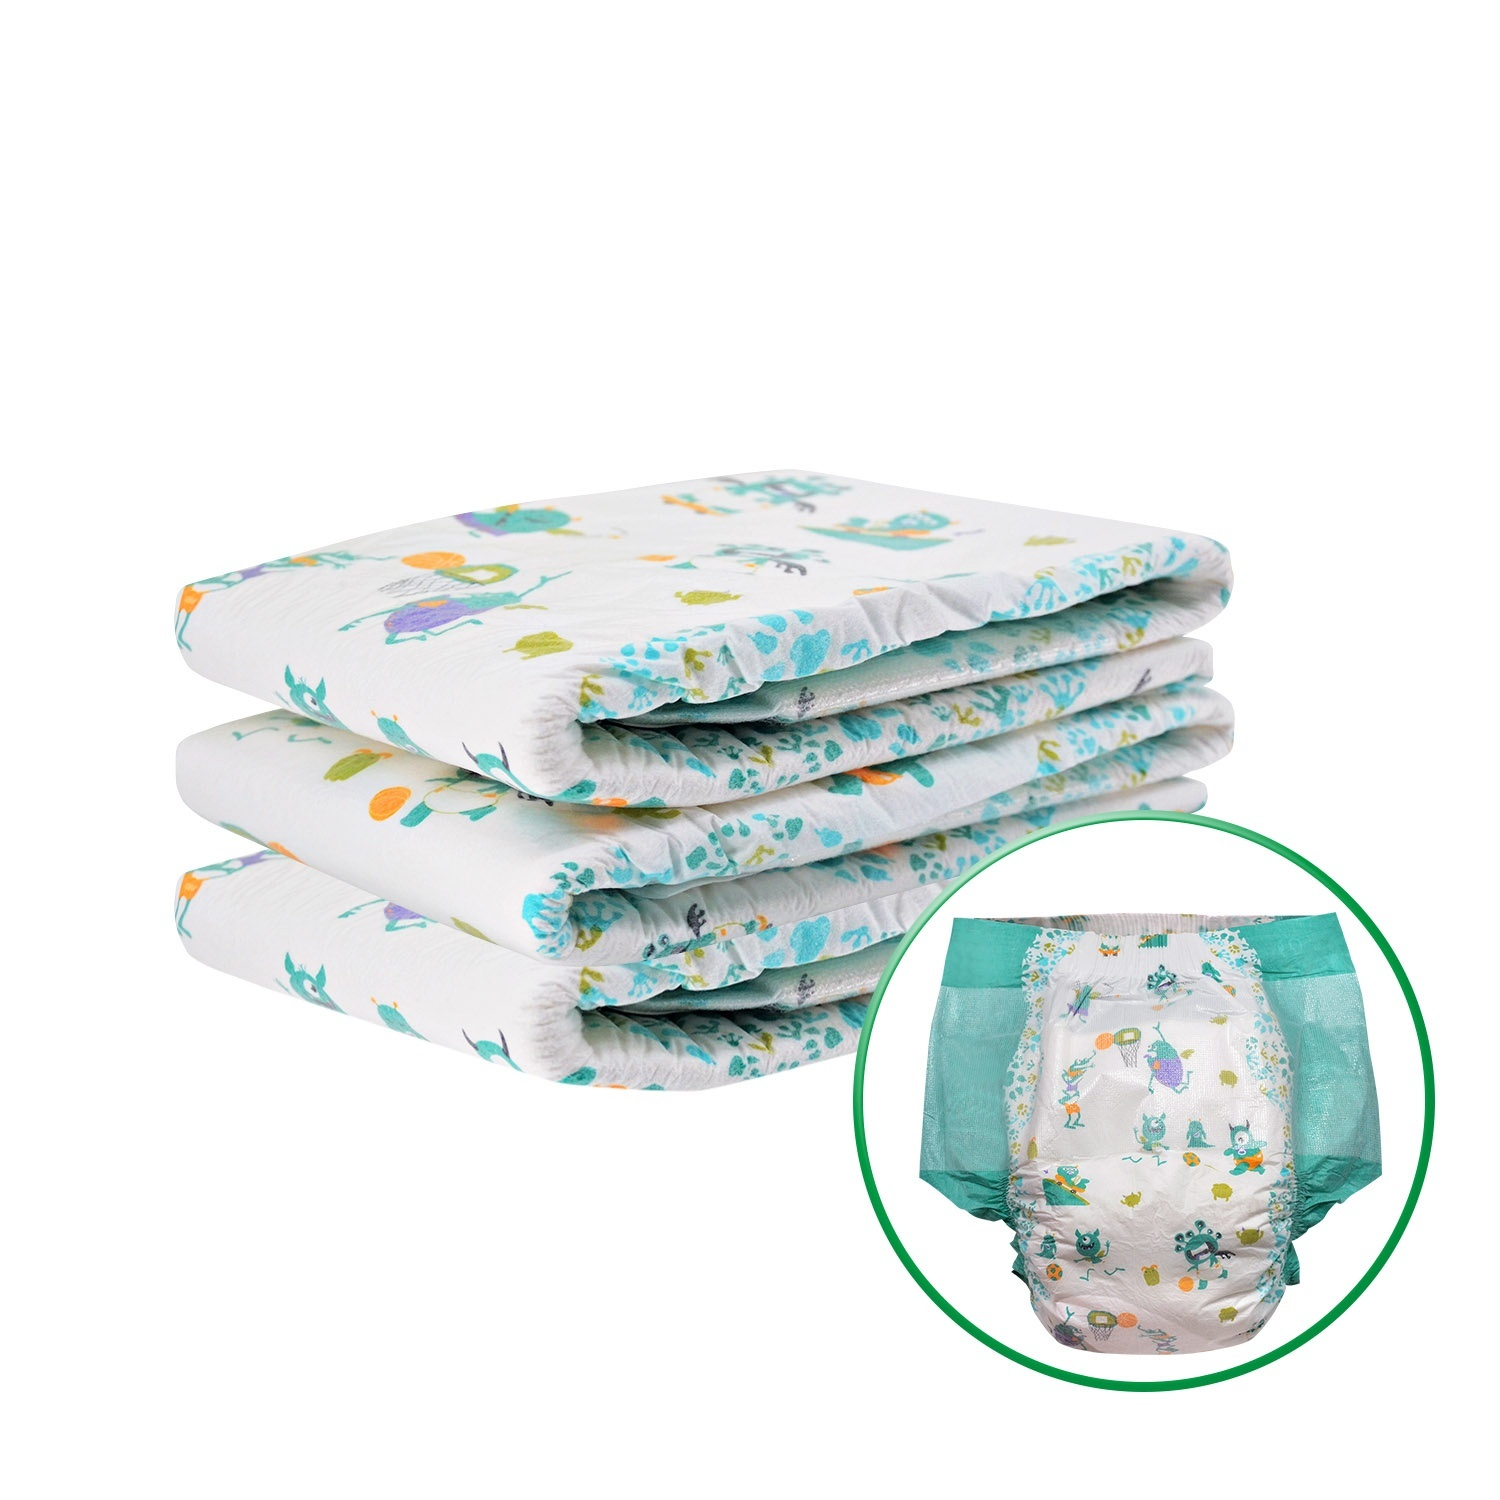 DDLG Training Pants Large Capacity 6000ML ABDL Adult Baby Diaper Elastic Waist High Absorption Diaper